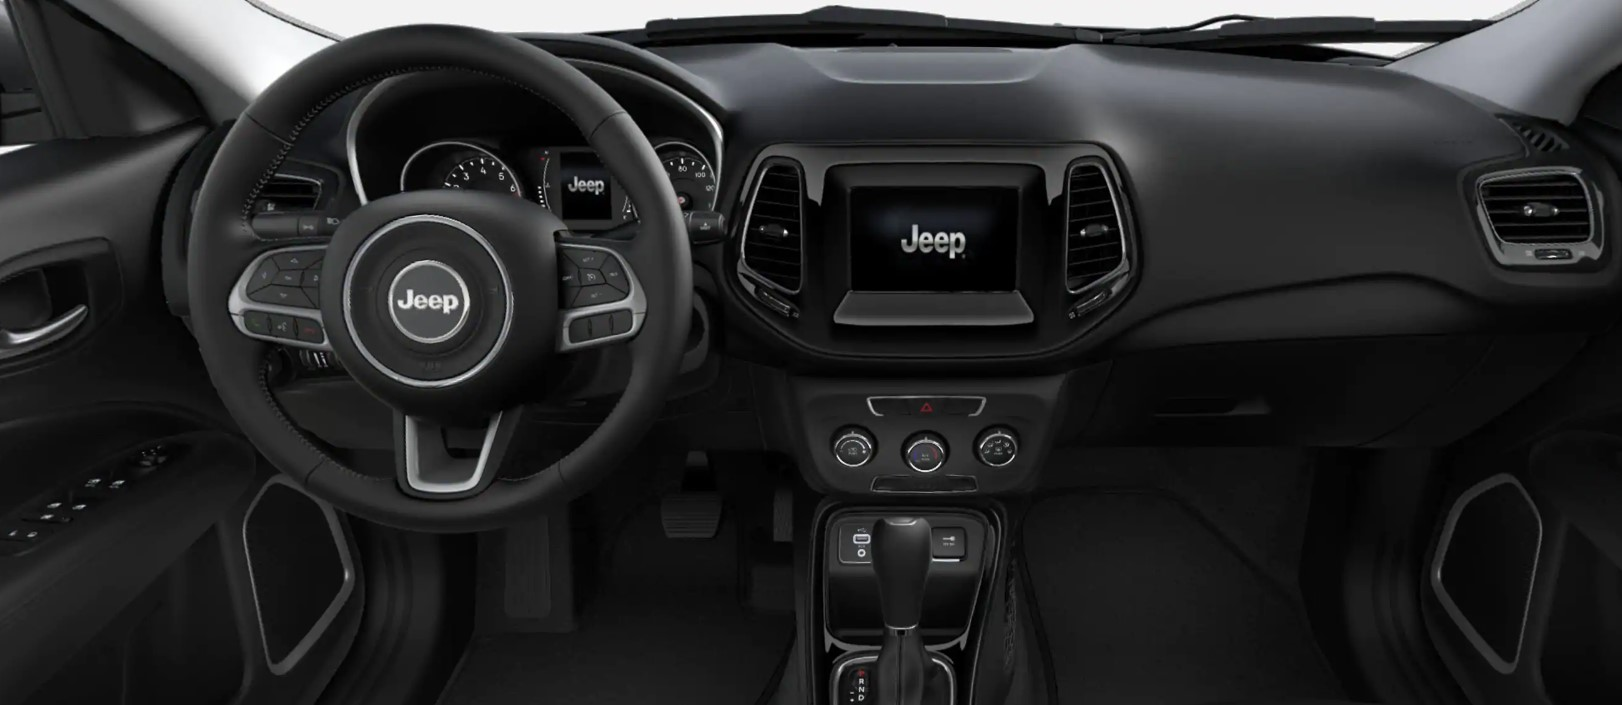 2019 Jeep Compass Altitude Dashboard Interior